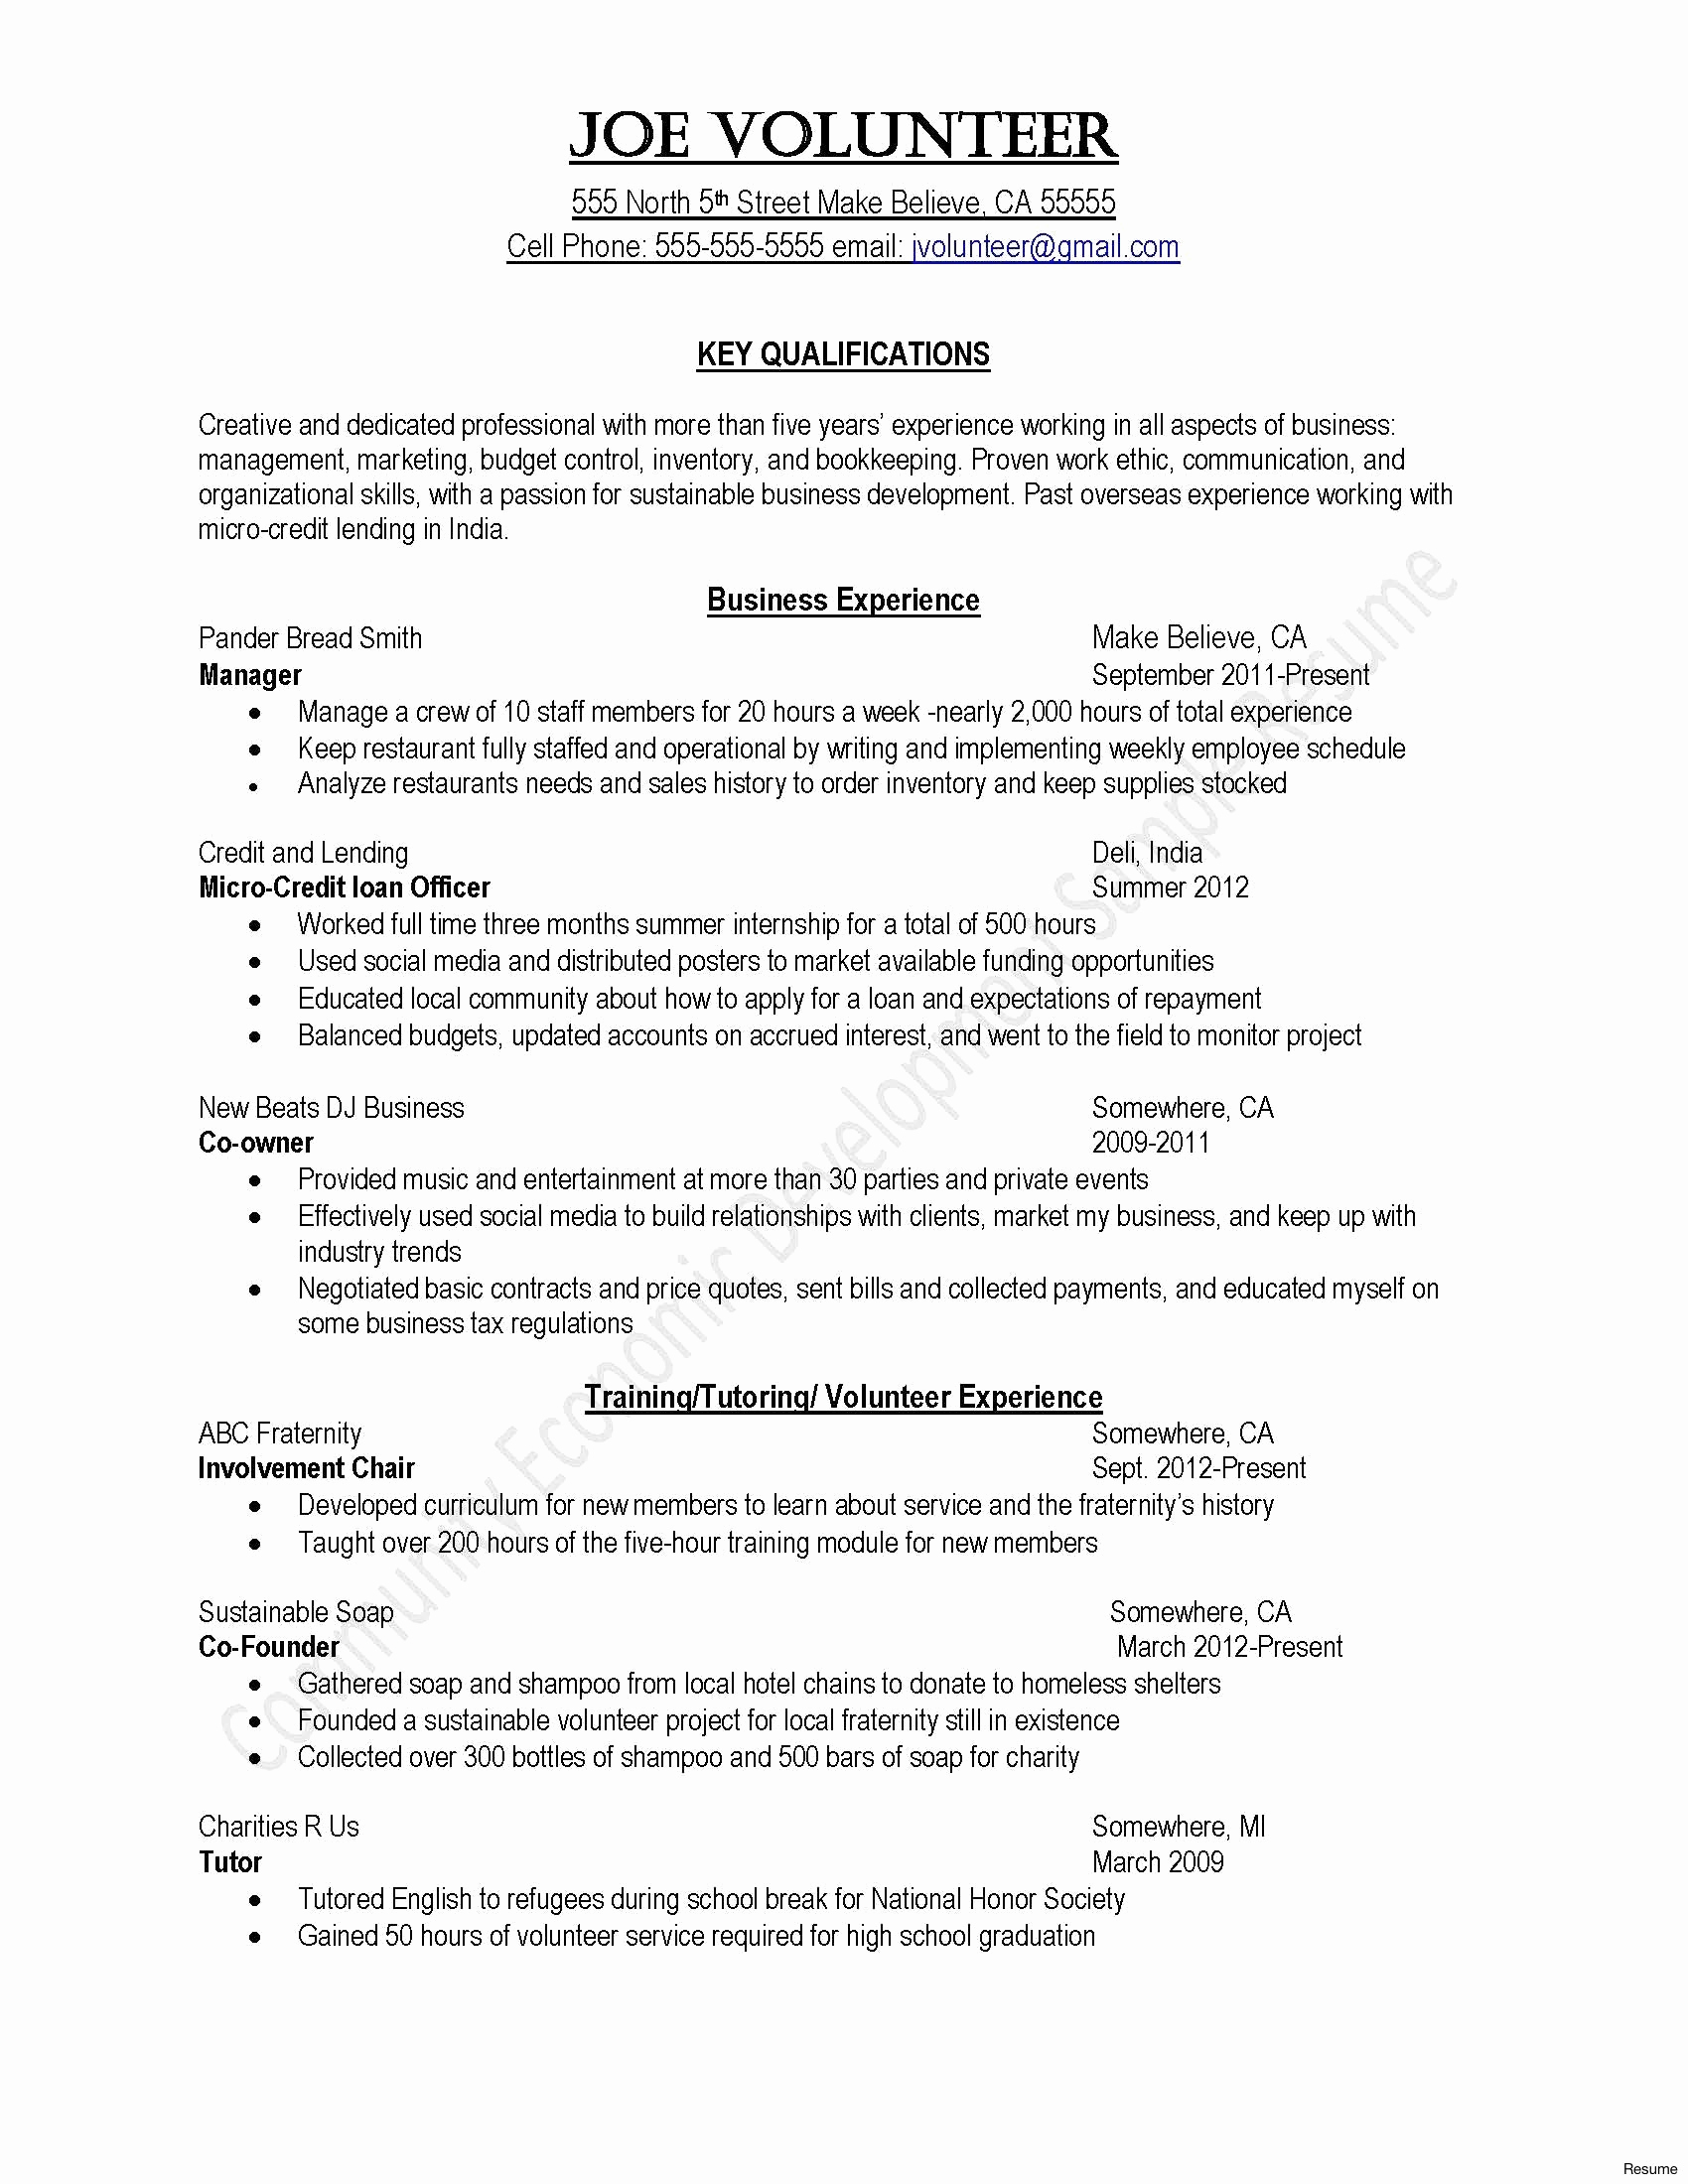 Resume without Work Experience - Cover Letter Template No Experience Samples